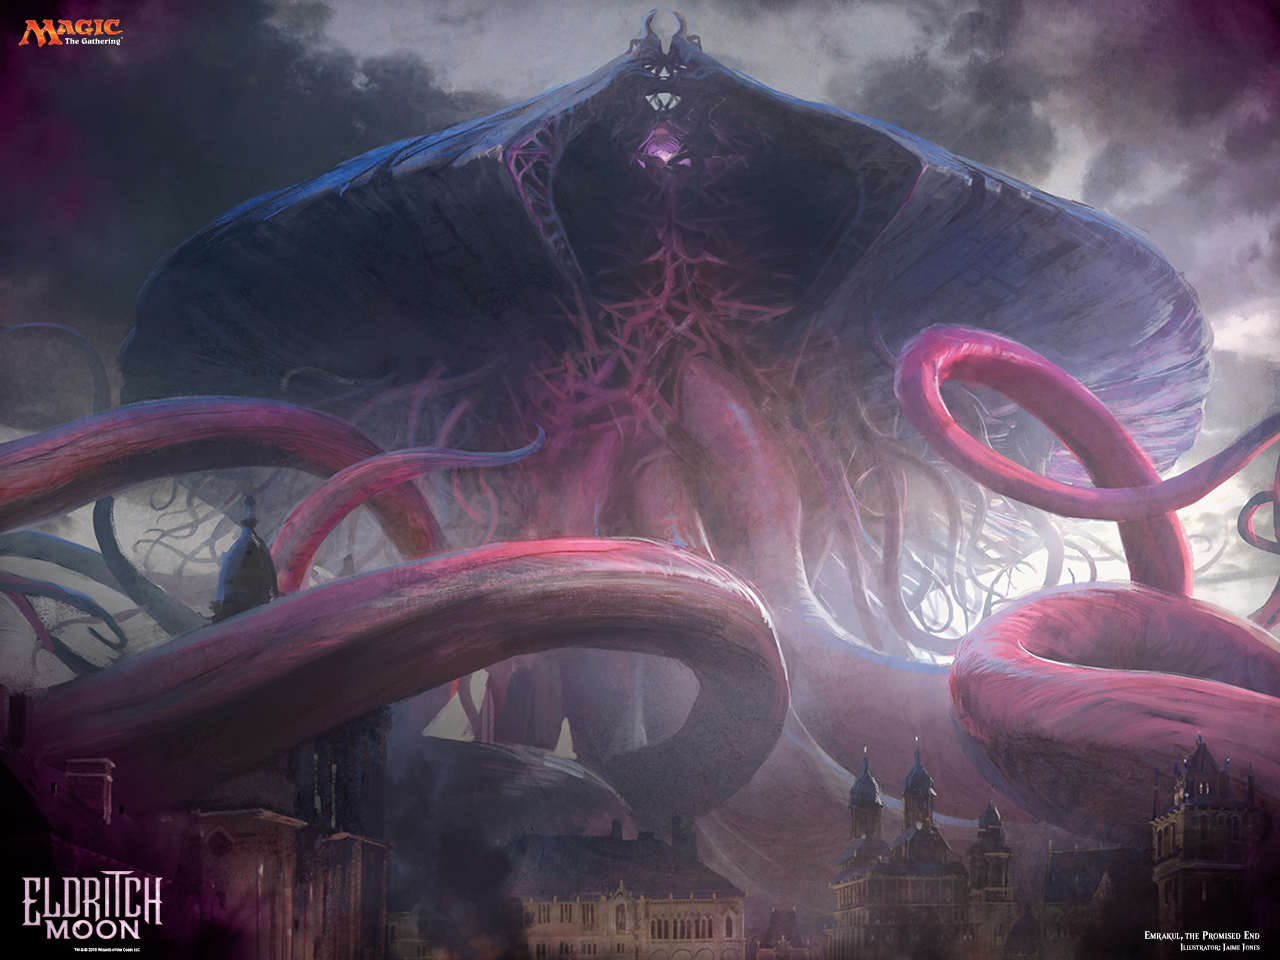 http---magic.wizards.com-sites-mtg-files-images-wallpaper-Emrakul-the-Promised-End_EMN_1280x960_Wallpaper